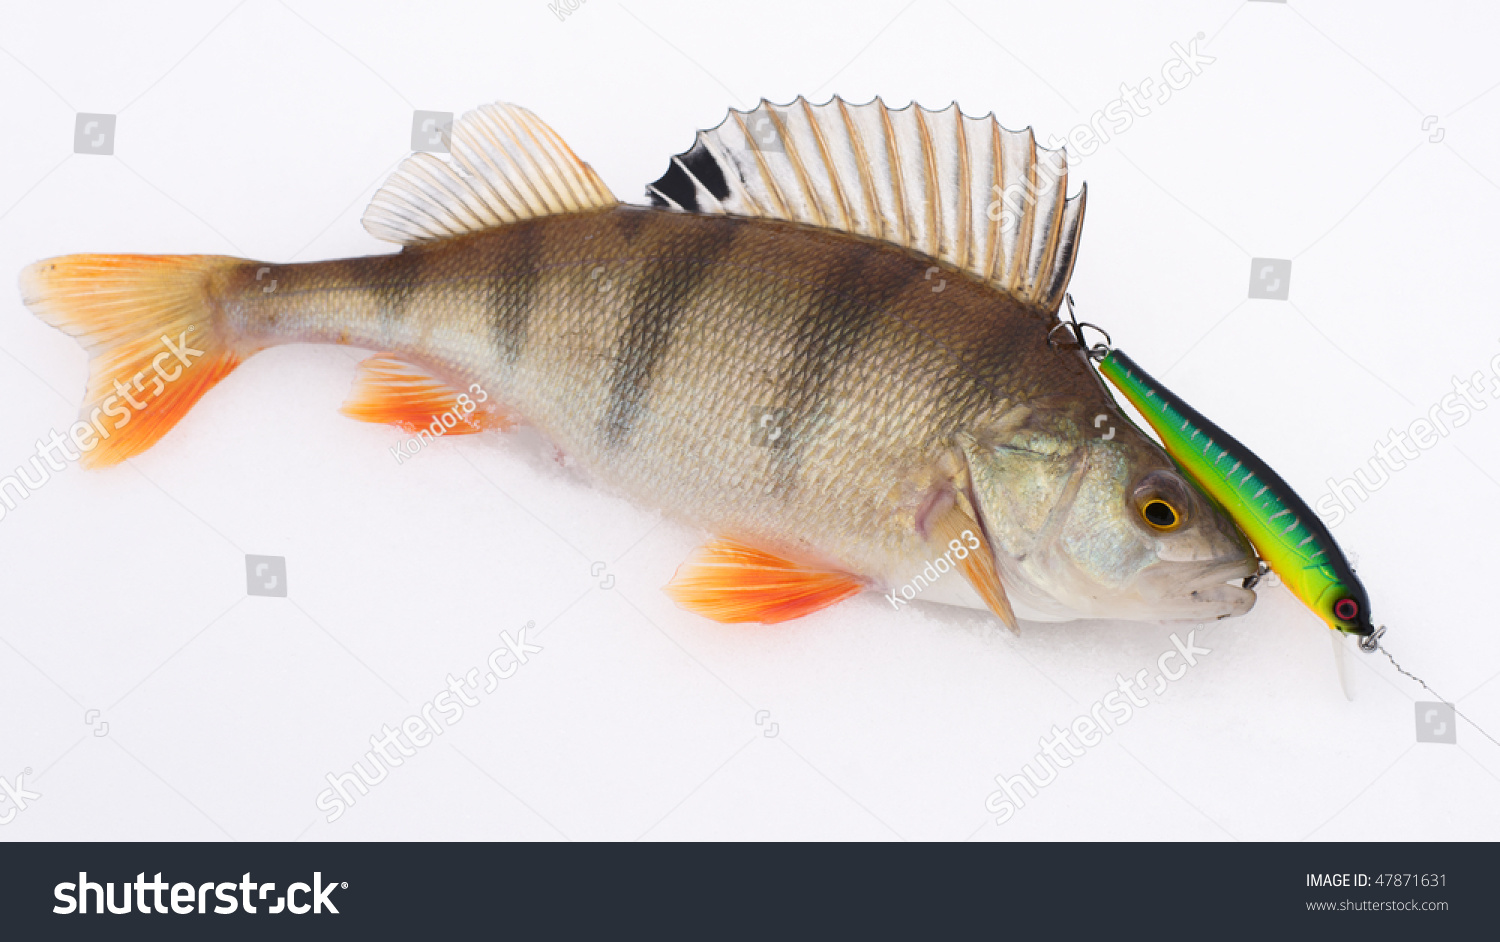 How to catch a perch on spinning